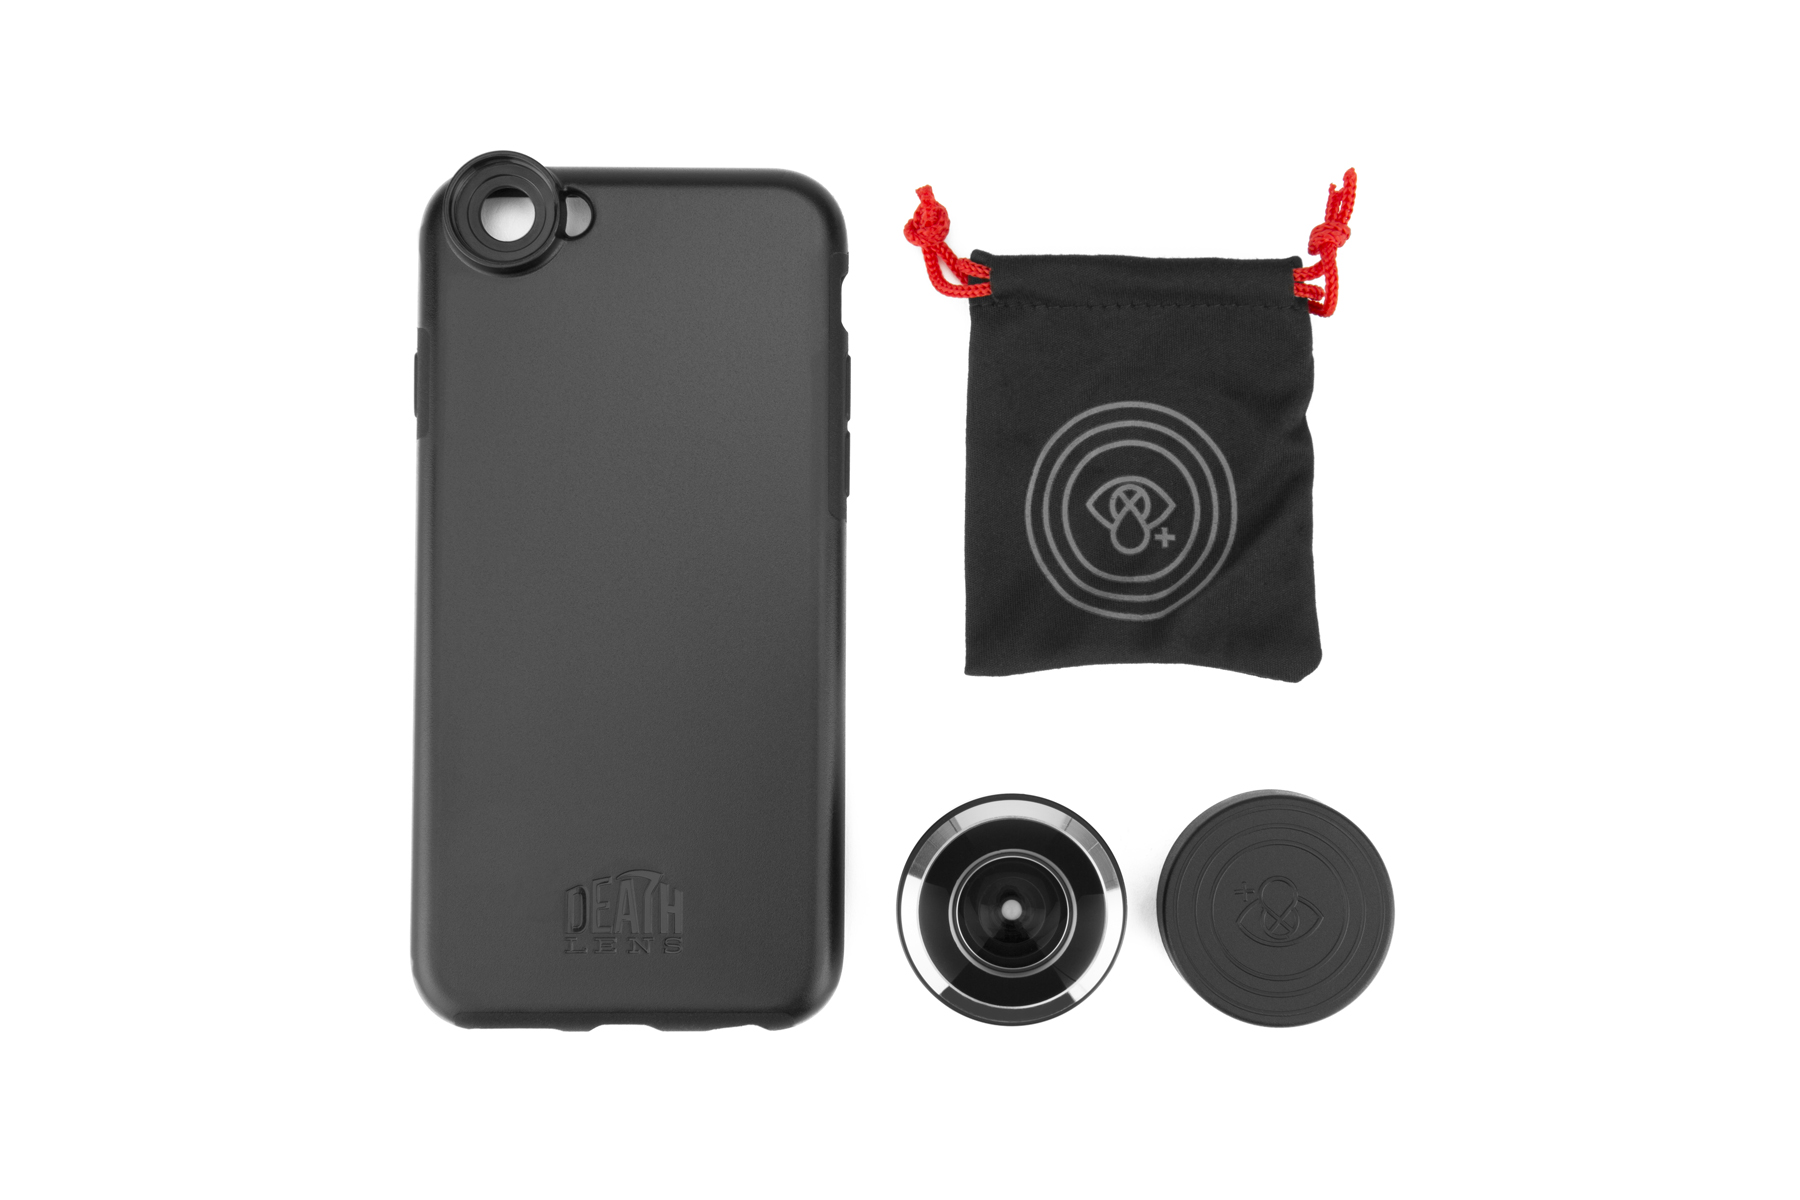 reputable site 8c37b 10c98 Death Lens Pro Kit iPhone 6/6S Fisheye Lens